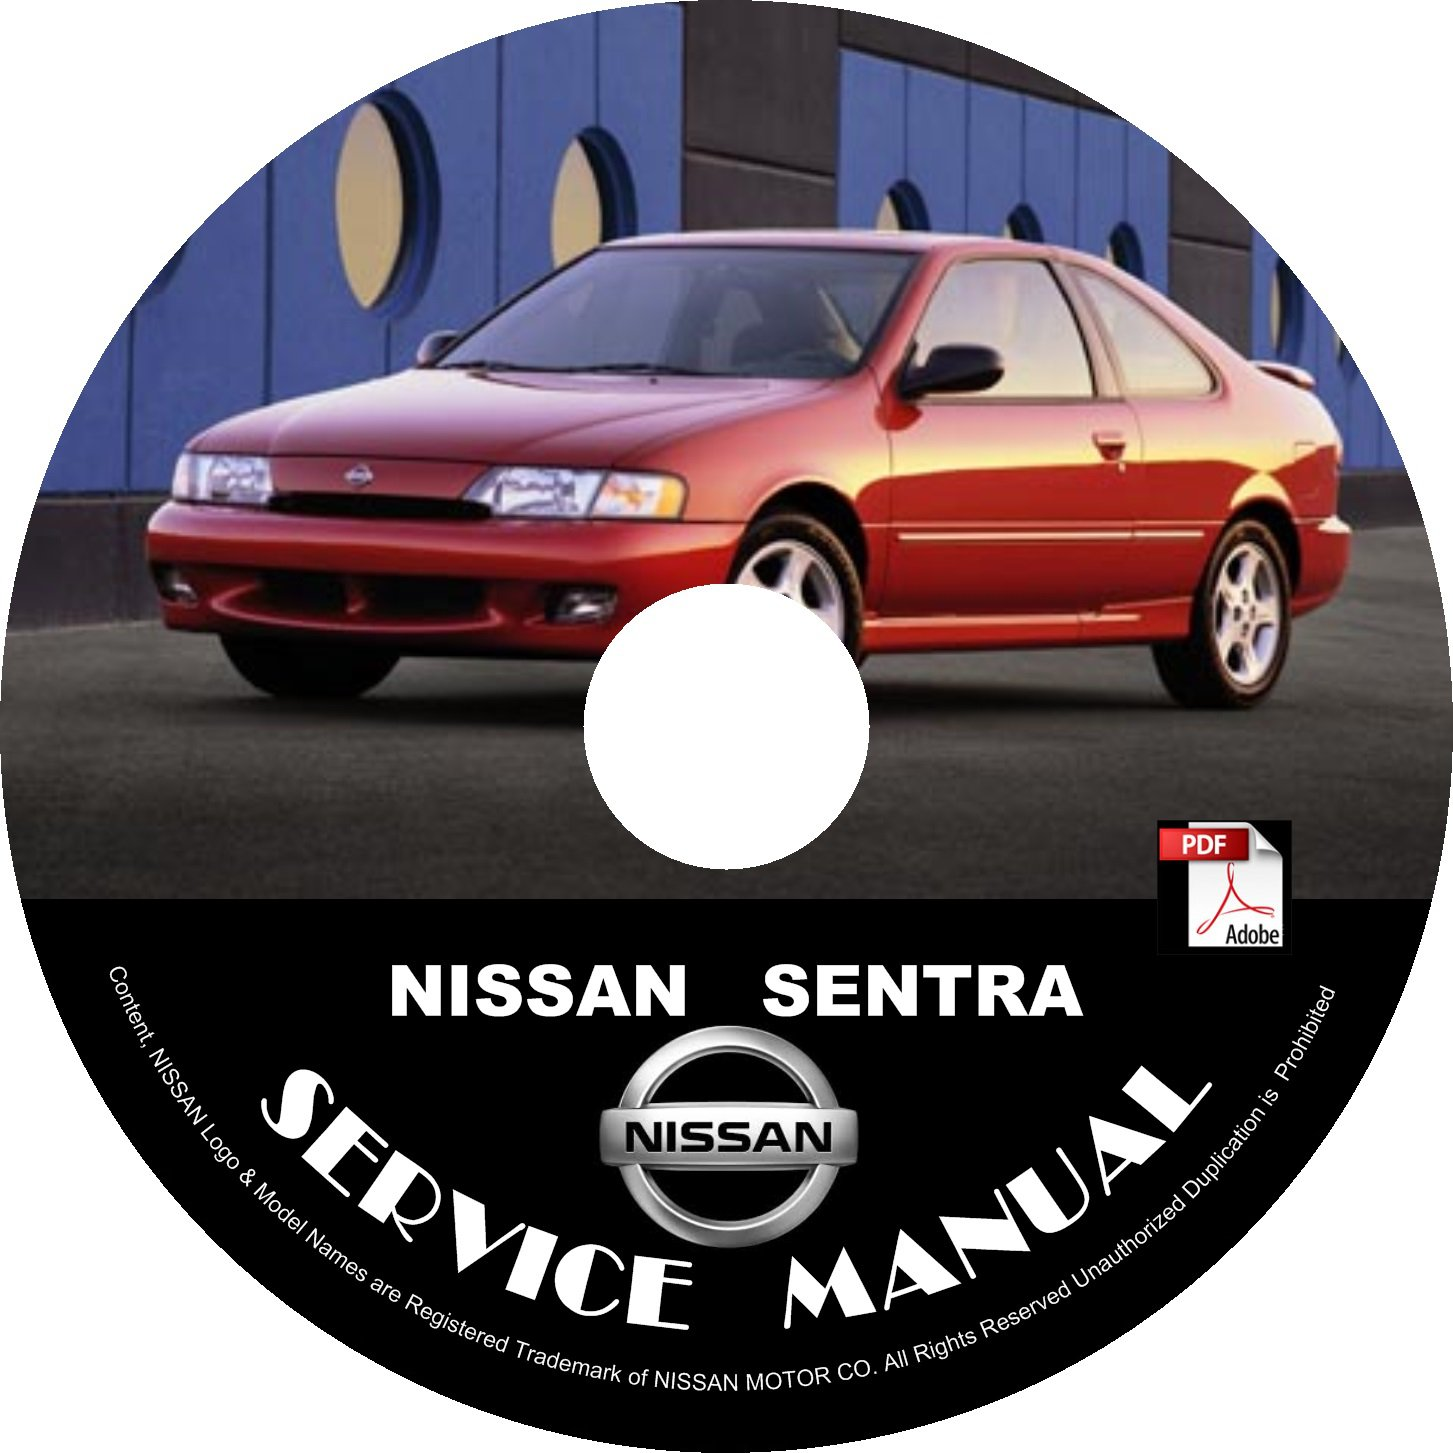 1996 96 Nissan Sentra Factory Service Repair Shop Manual on CD Fix Repair Rebuild 96 Workshop Guide